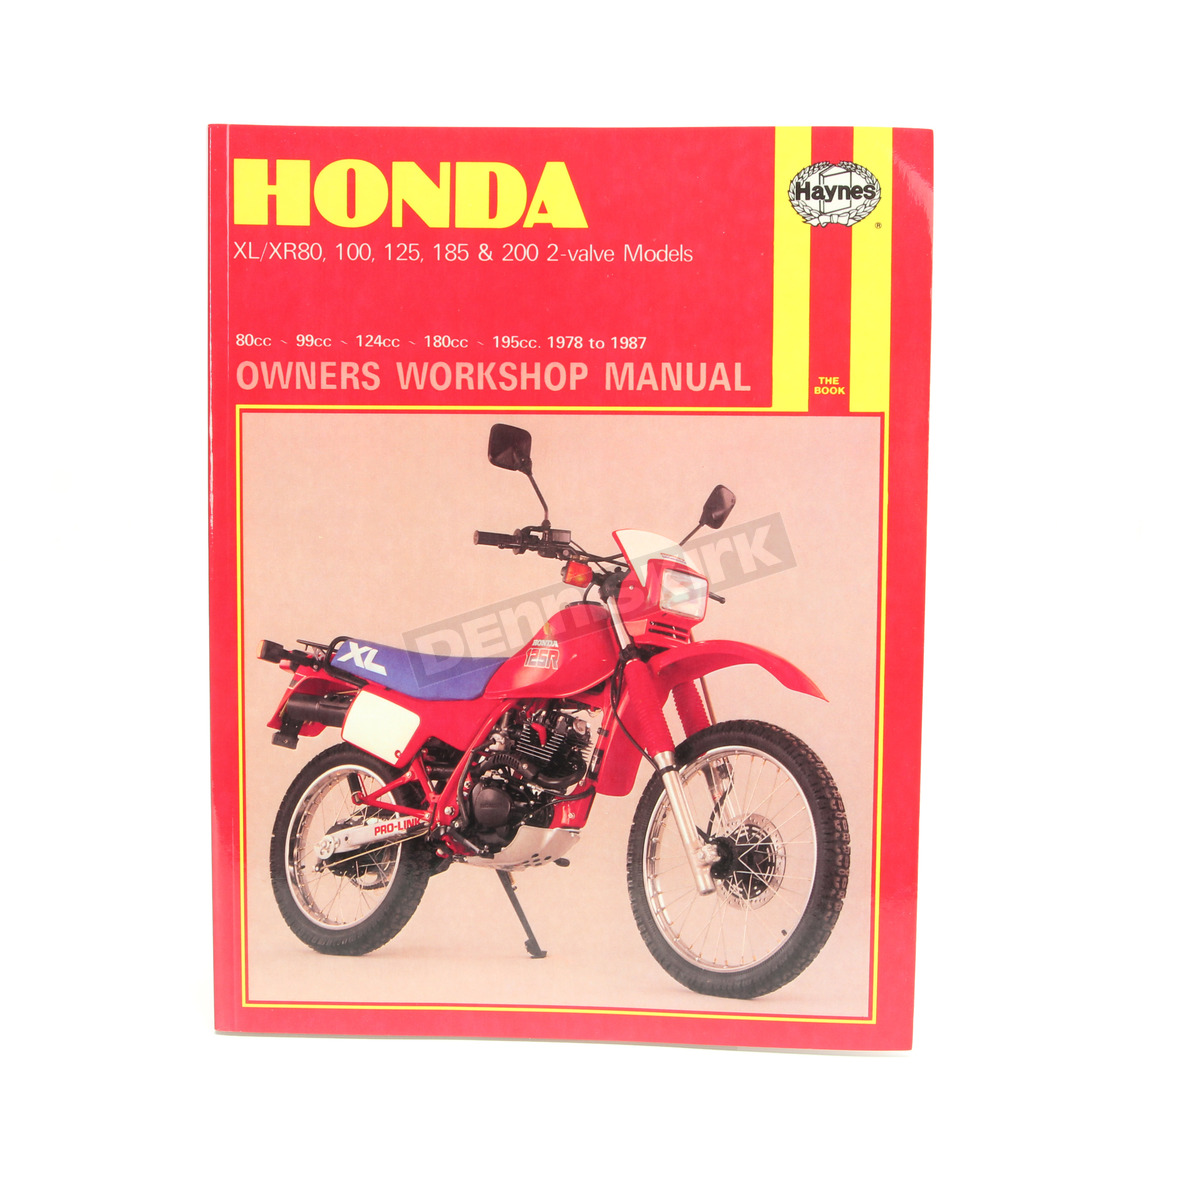 Haynes Honda Repair Manual - 566